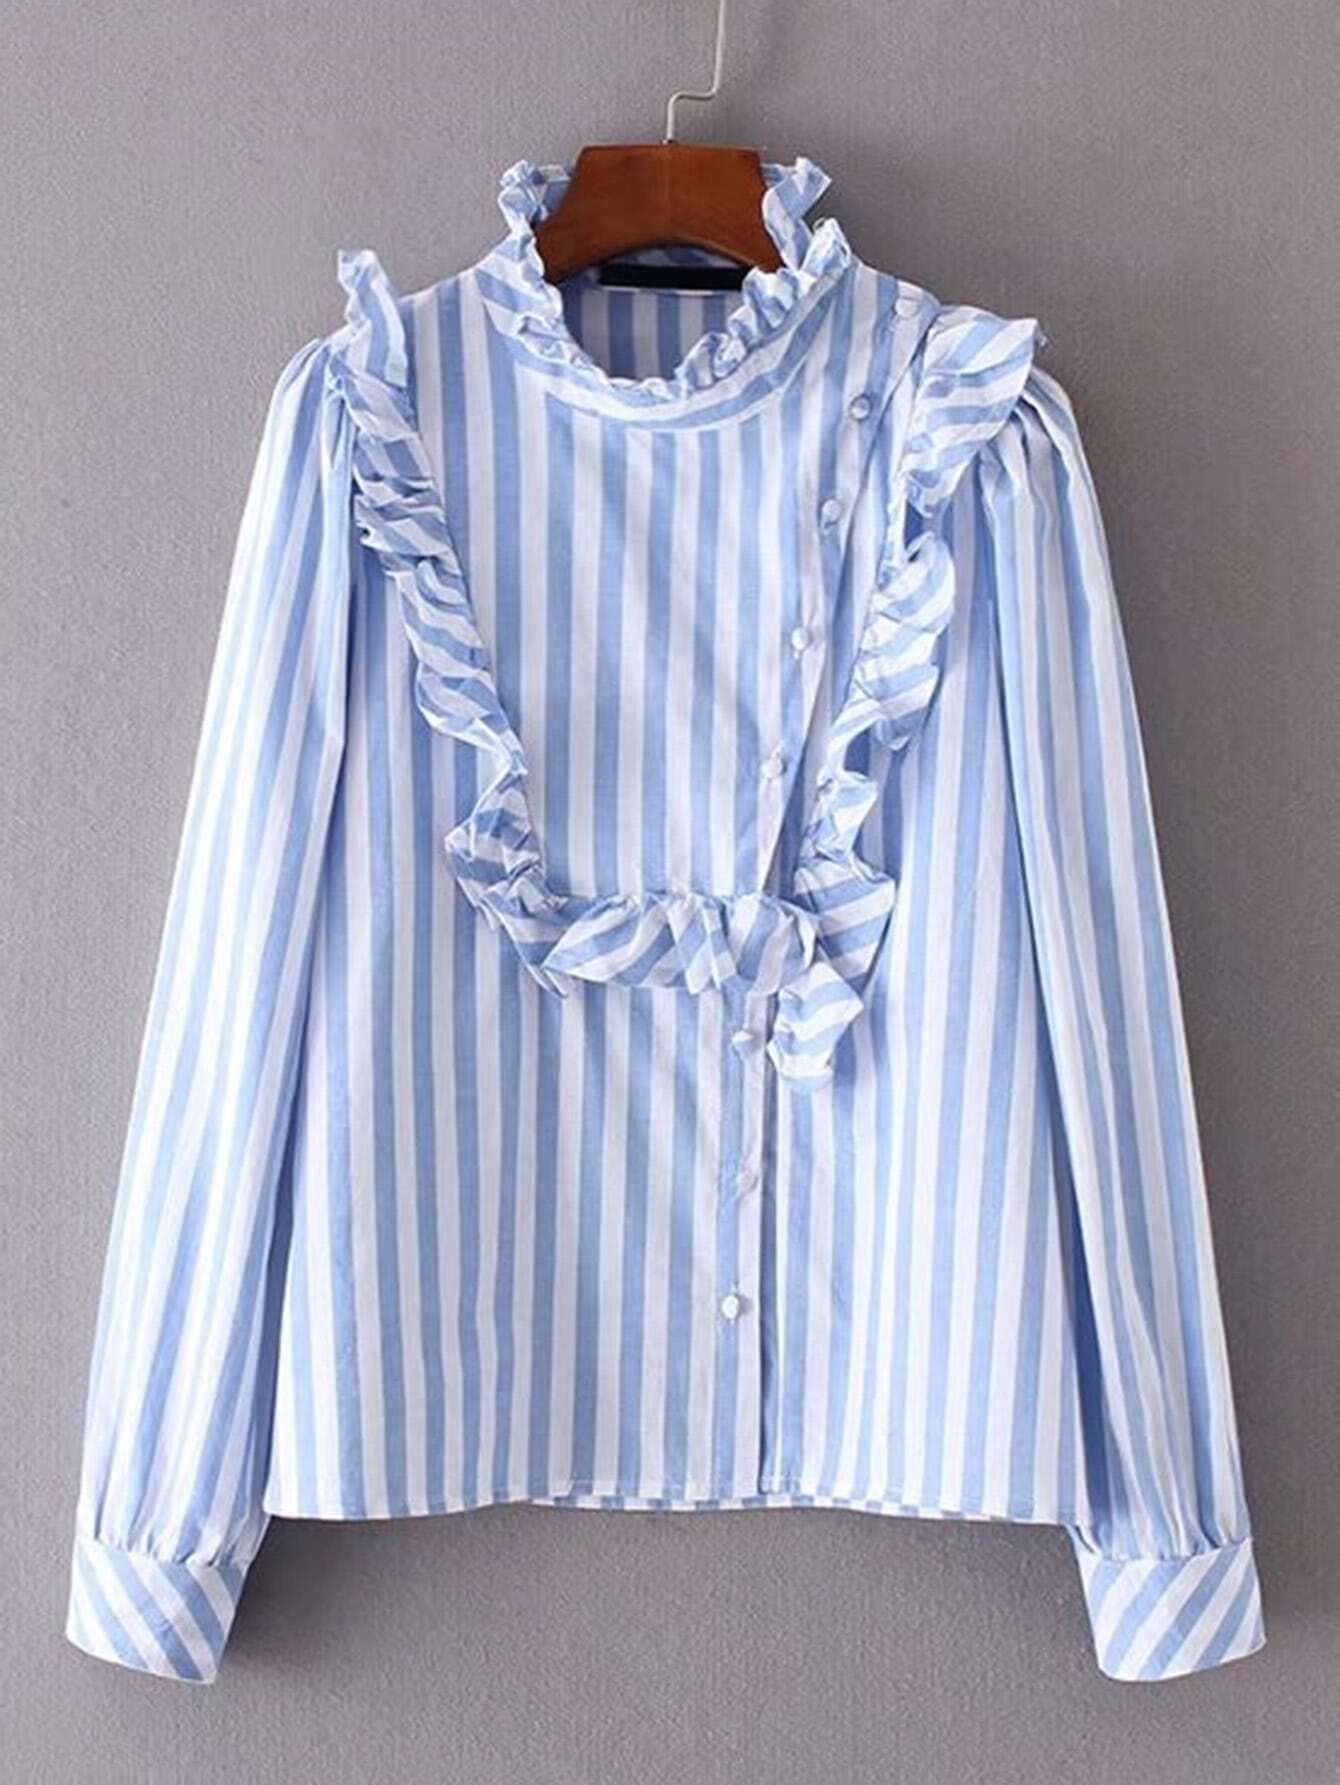 Ruffle Detail Oblique Button Striped Blouse